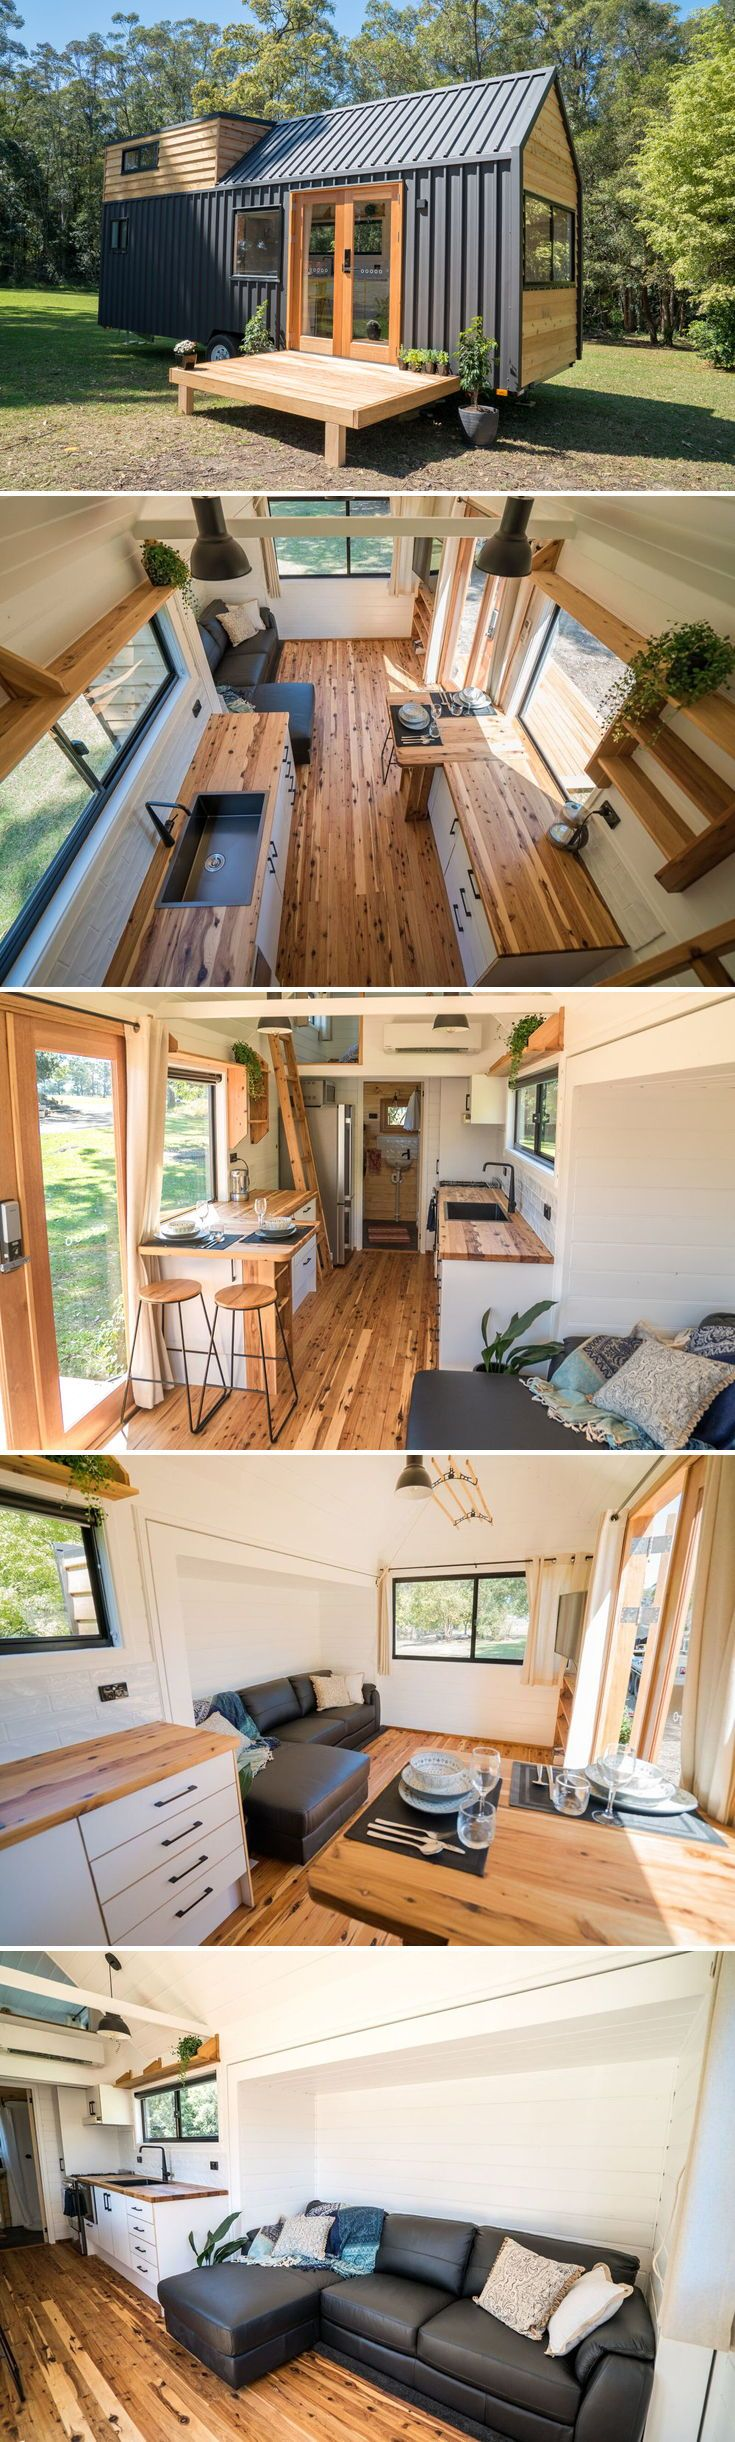 Sojourner by Häuslein Tiny House Co #tinyhome